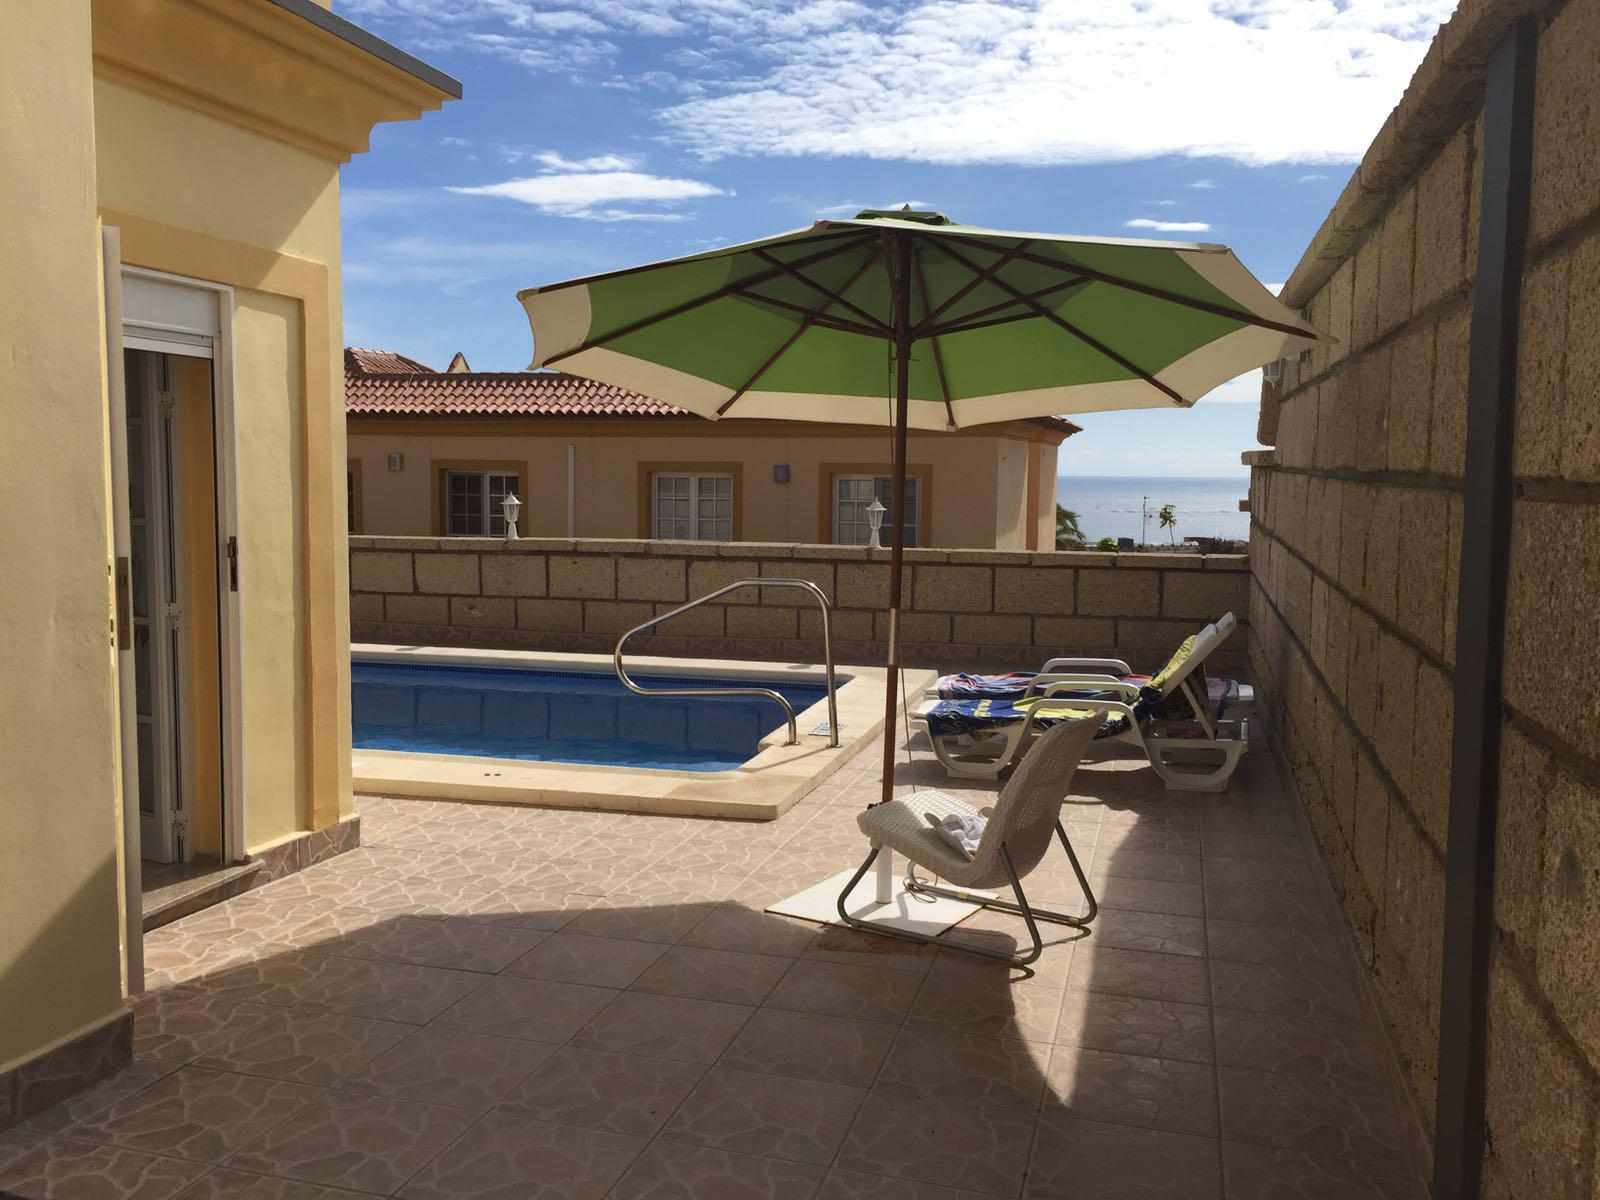 Properties for Sale in Tenerife, Canary Islands, Spain | SylkWayStar Real Estate. Townhouse 5 bedrooms Madroñal. Image-25149